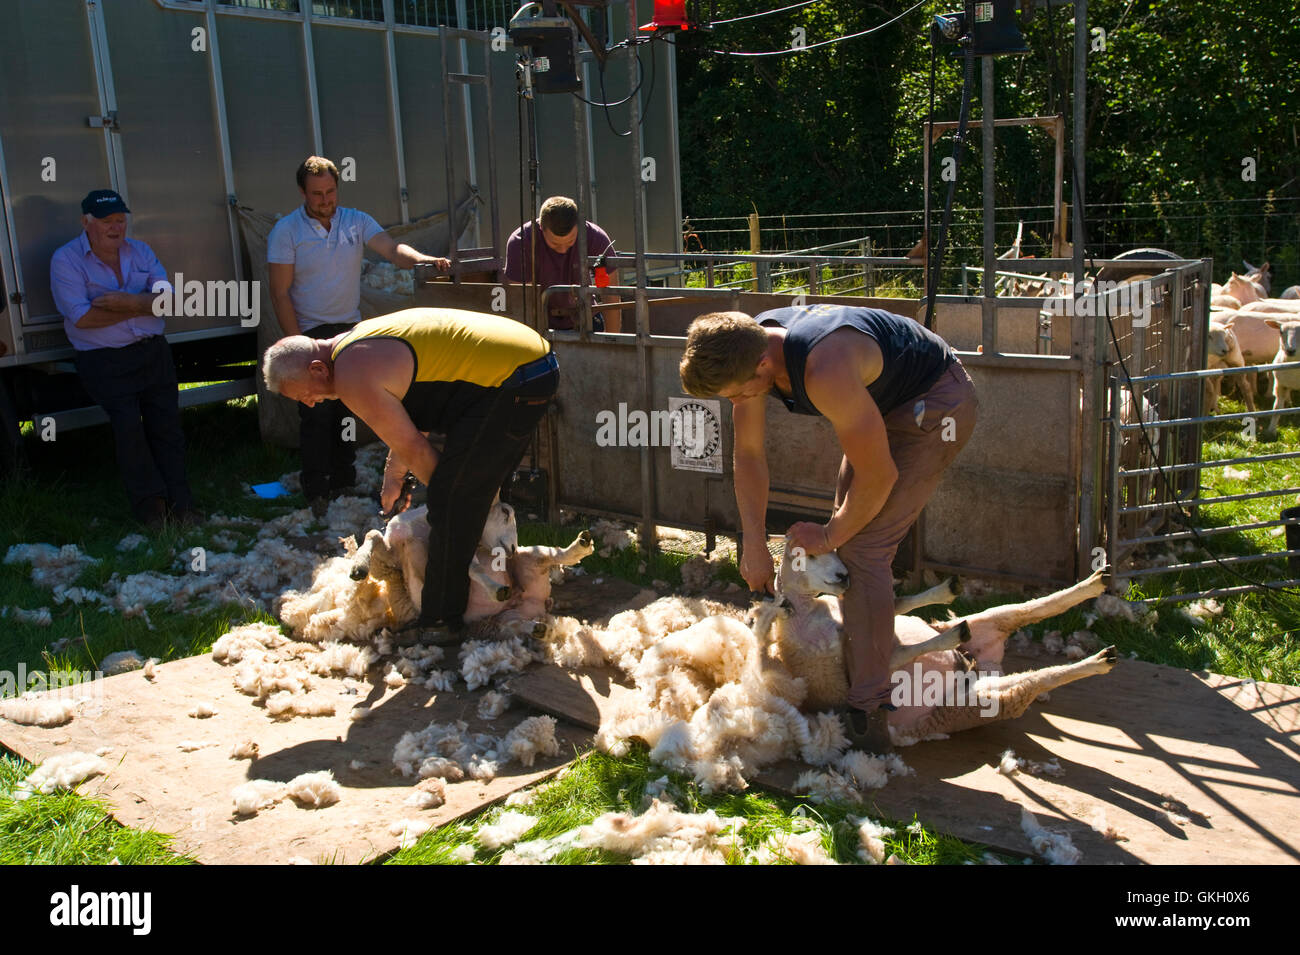 Sheep shearing at Llanthony Show near Abergavenny Monmouthshire South Wales UK - Stock Image